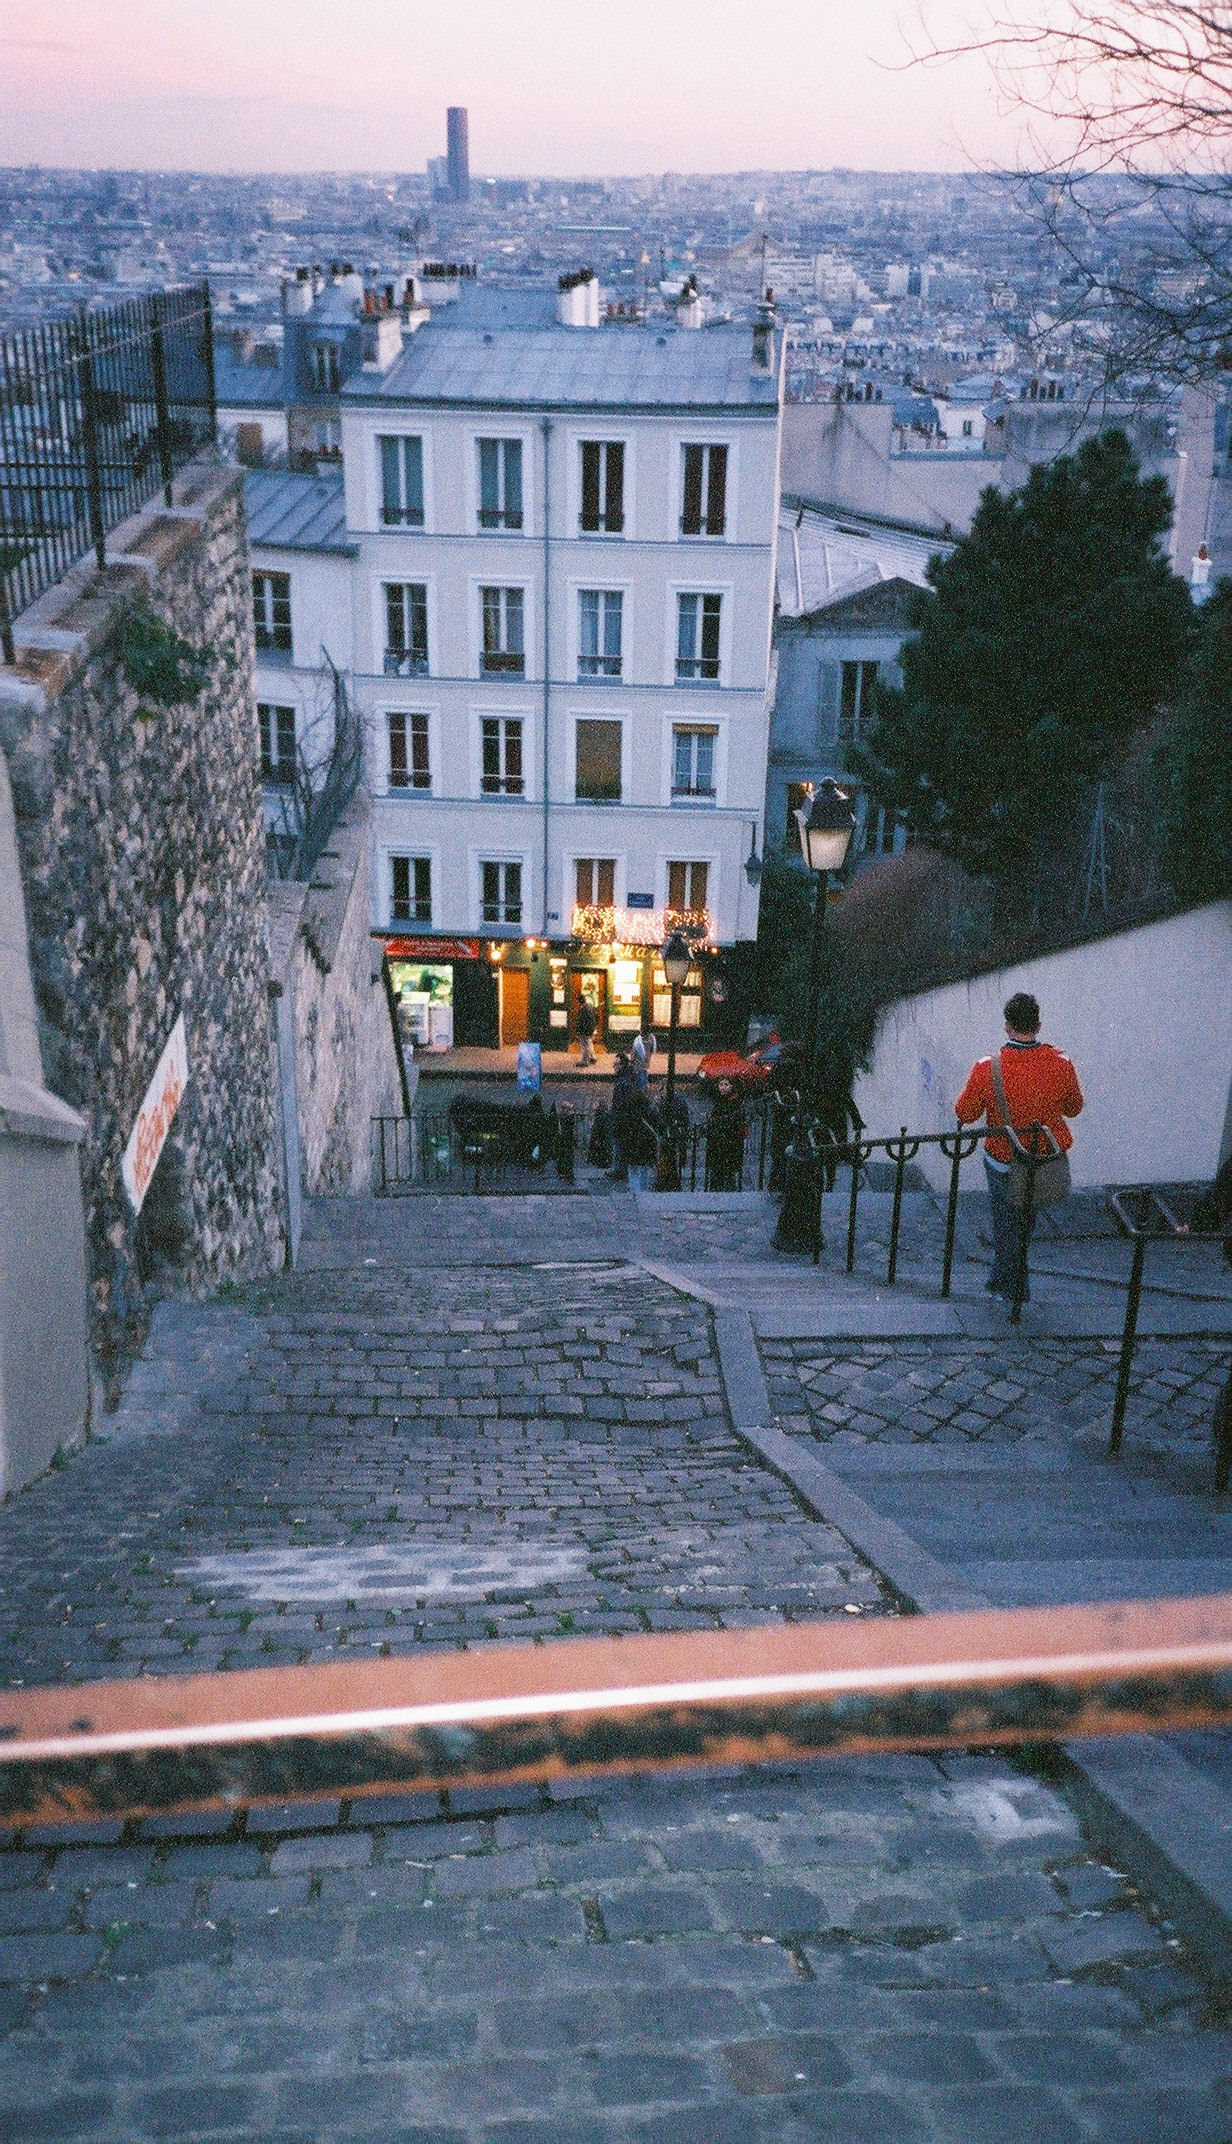 Paris Rue File:the Stairs Of Montmartre - Rue Du Calvaire, Paris